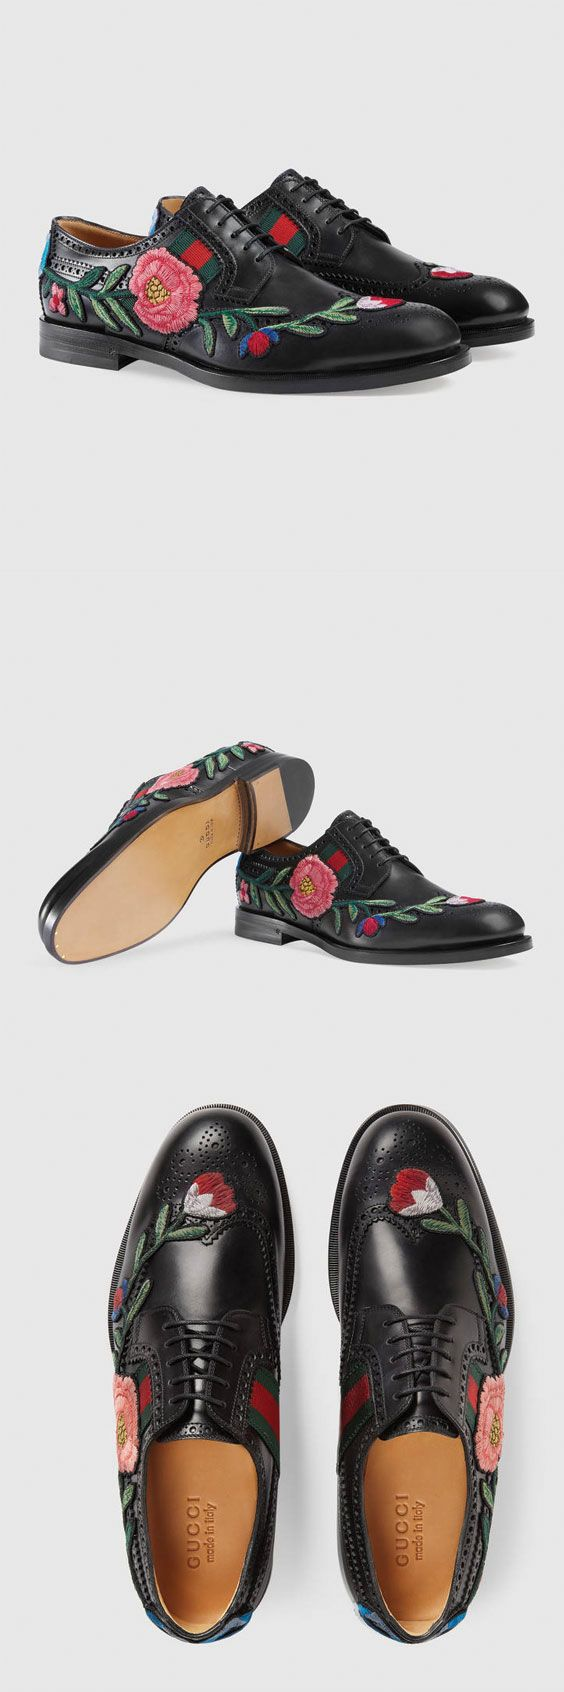 Gucci Leather brogue lace-up with embroidery $1,250